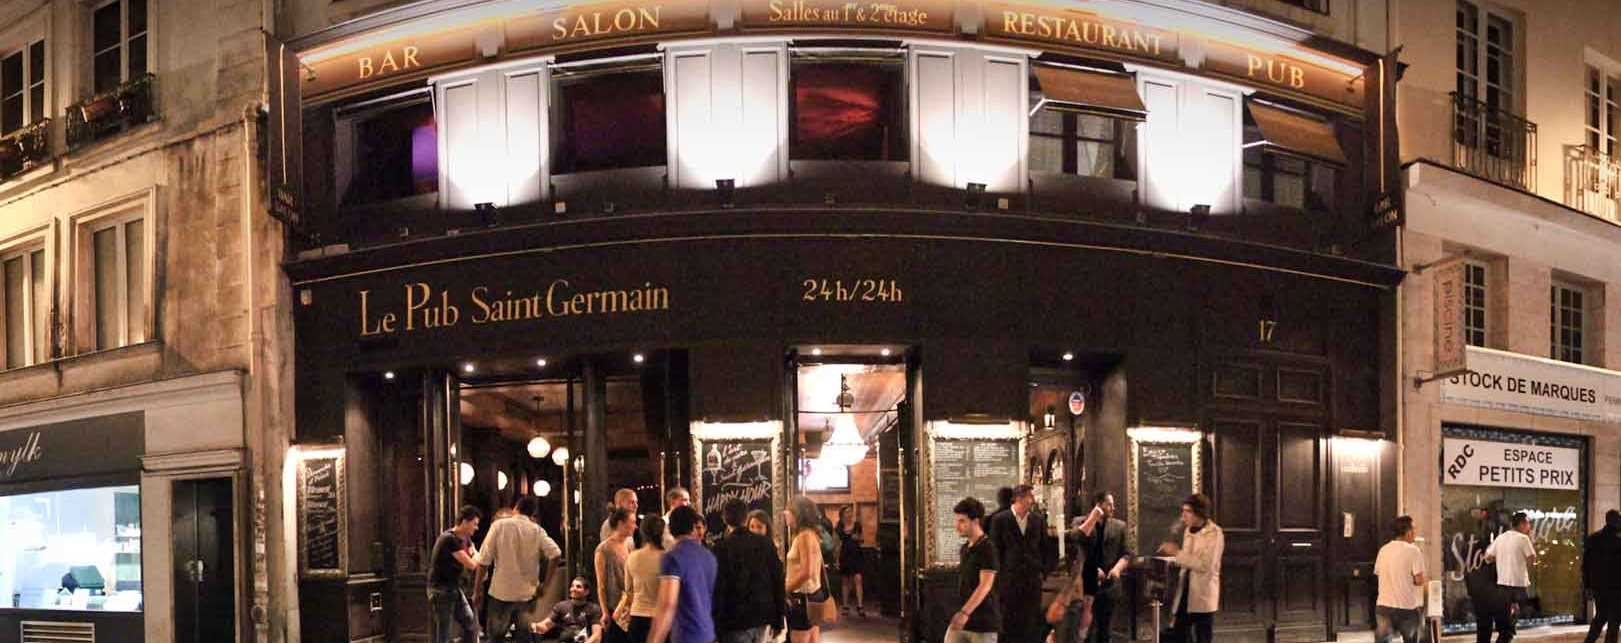 Париж, ресторан Le Pub Saint Germain